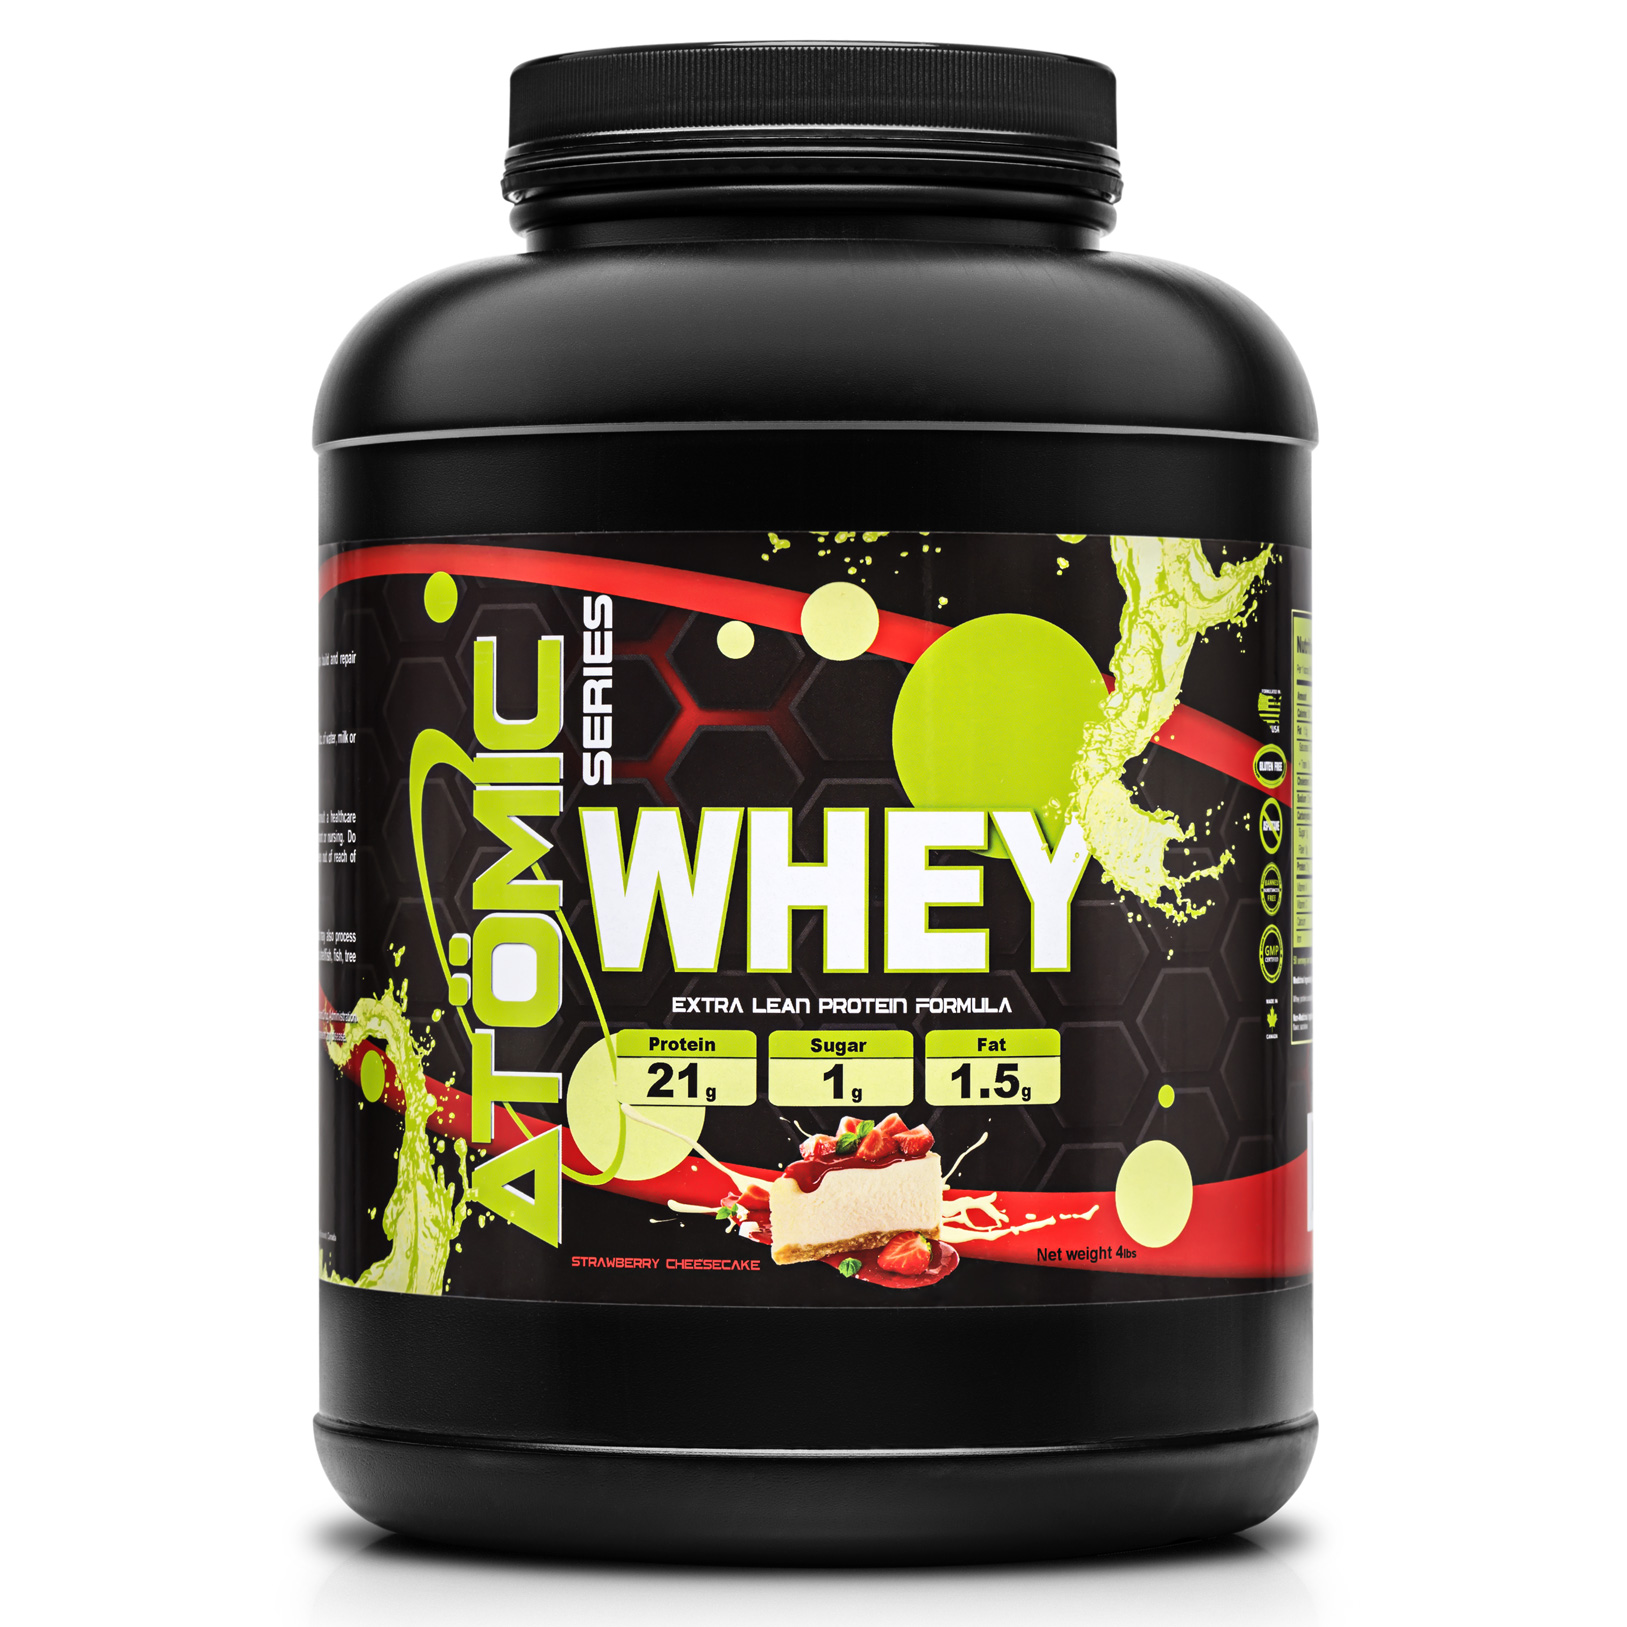 Atomic Series WHEY - Strawberry Cheesecake